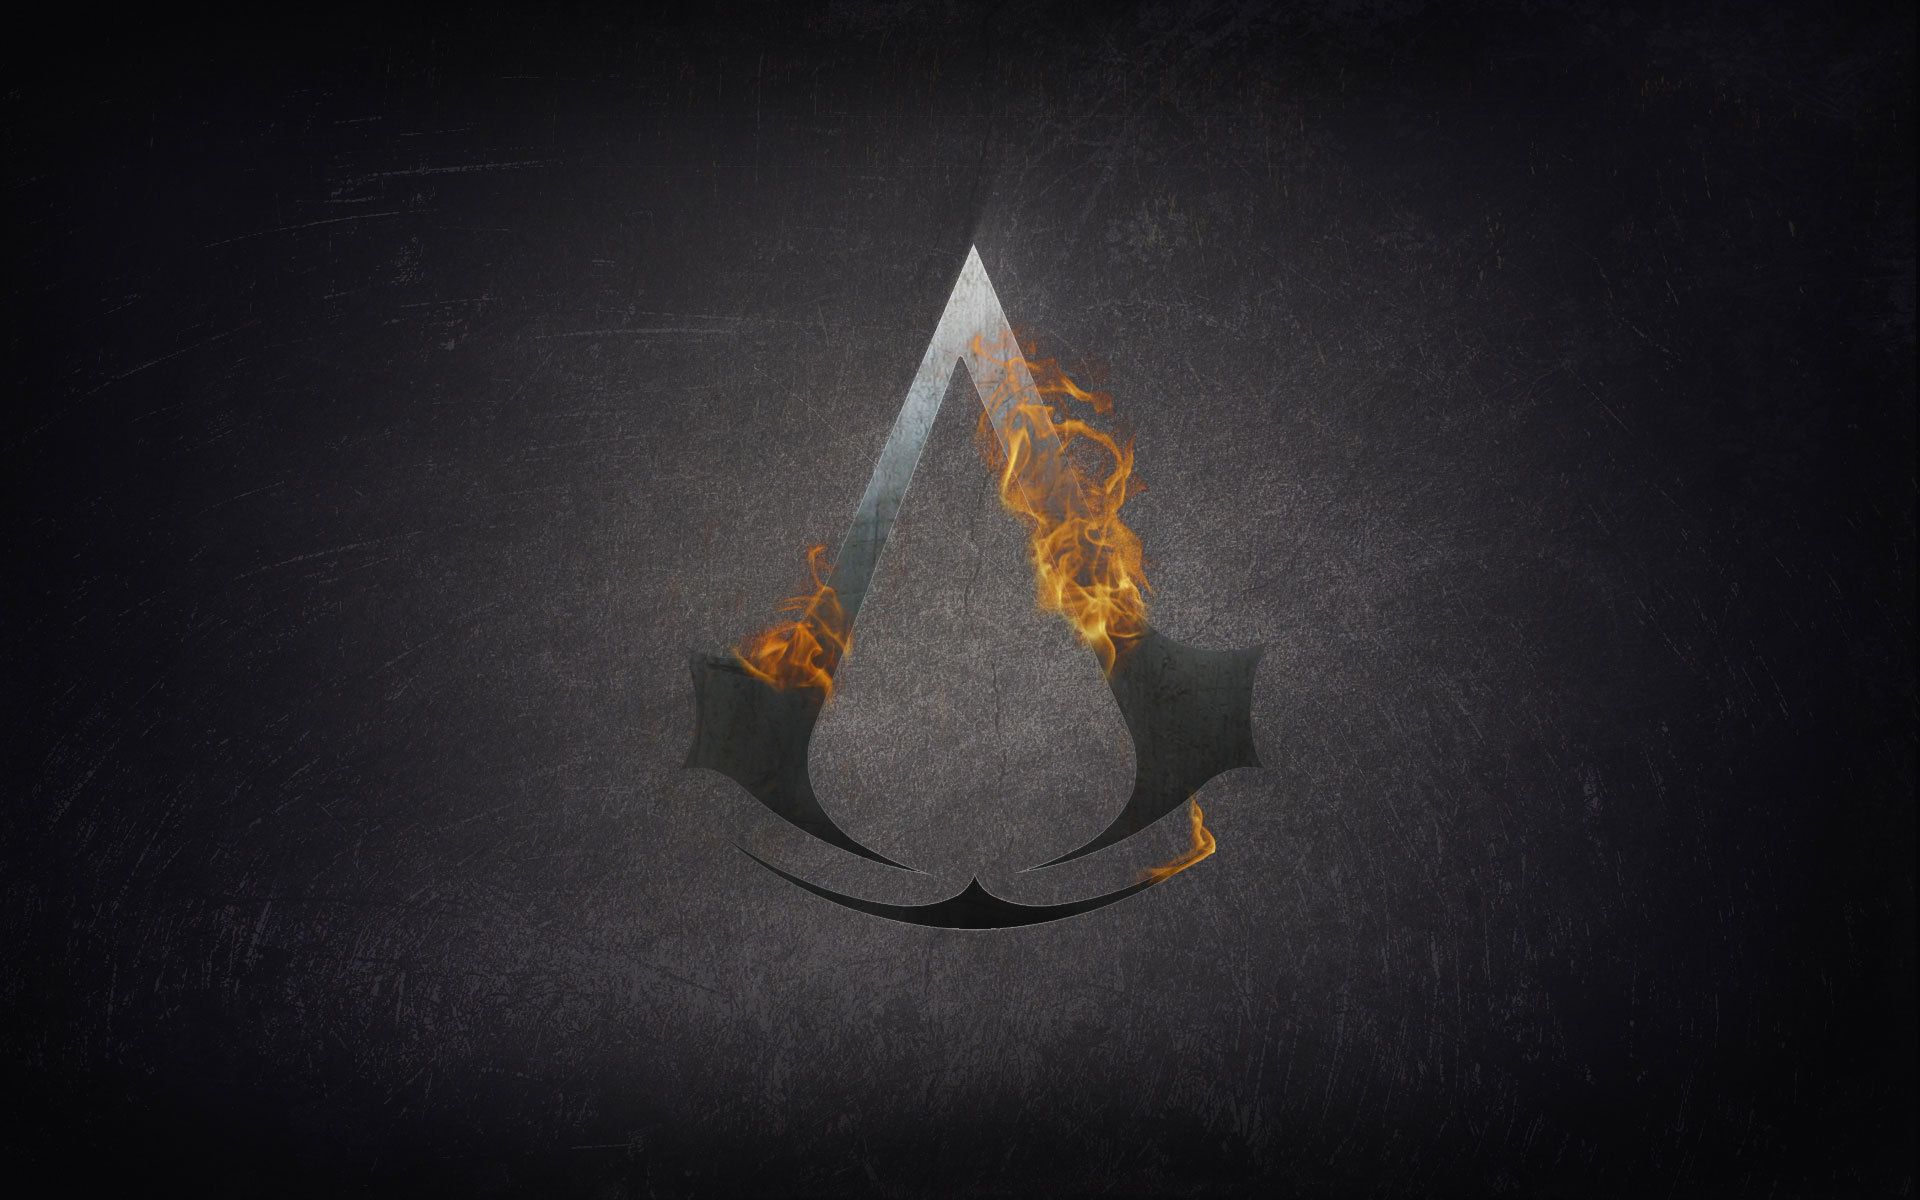 the flame assassins creed sign Assenov fire Assassins creed